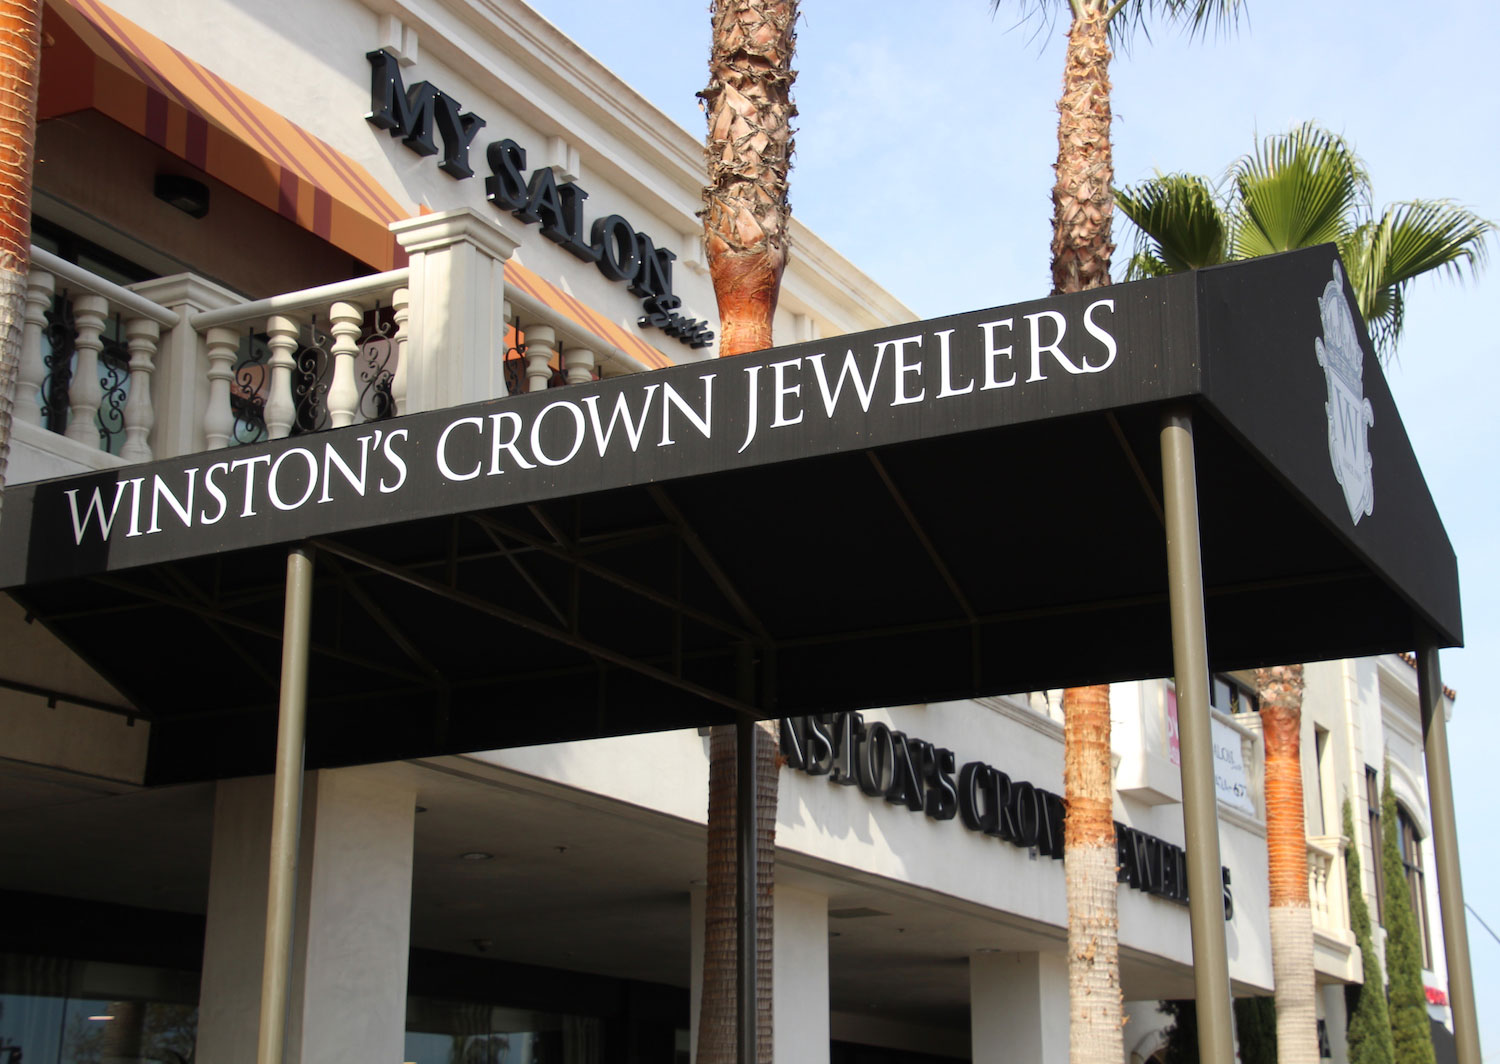 Winston Crown Jewelers